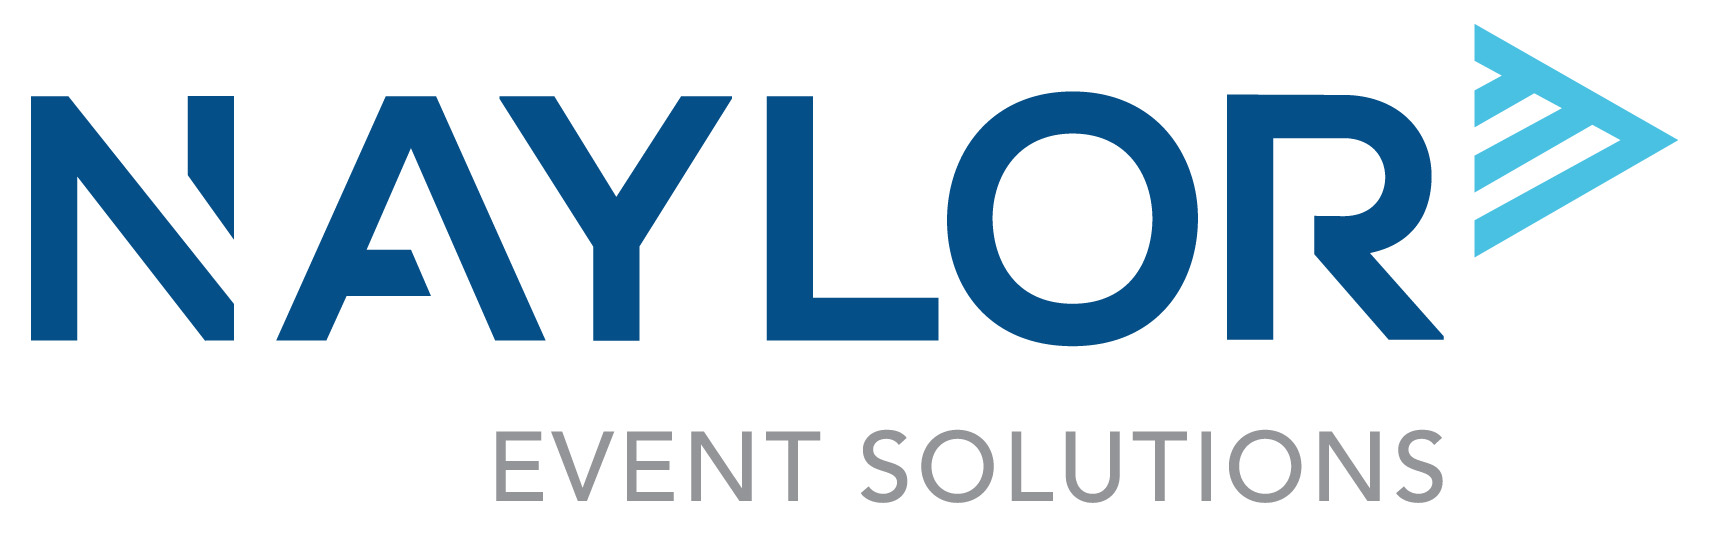 Naylor AS Logo CMYK